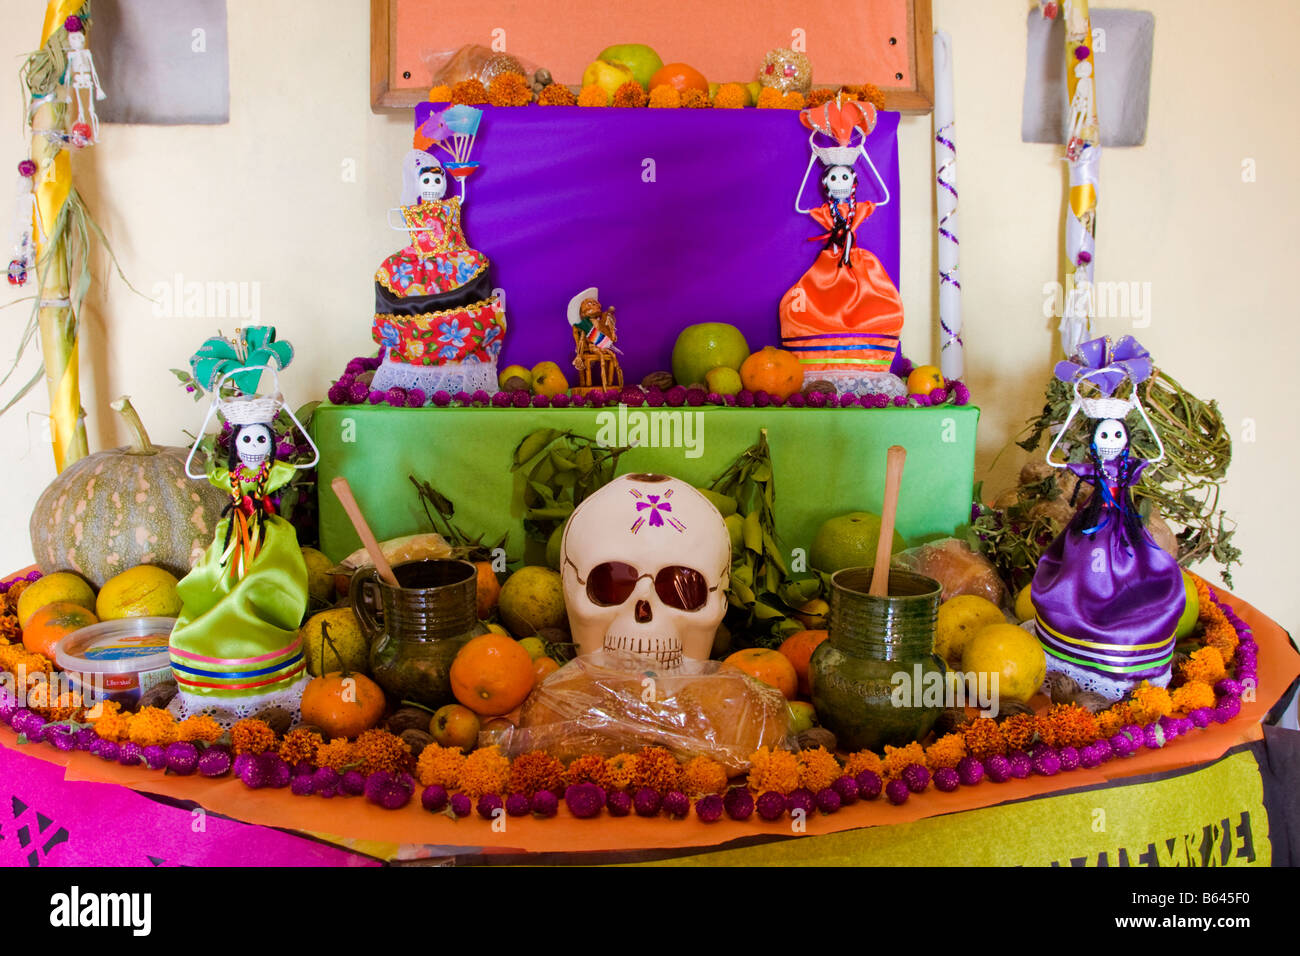 Oaxaca mexico day of the dead altar decorations in for Day of the dead craft supplies